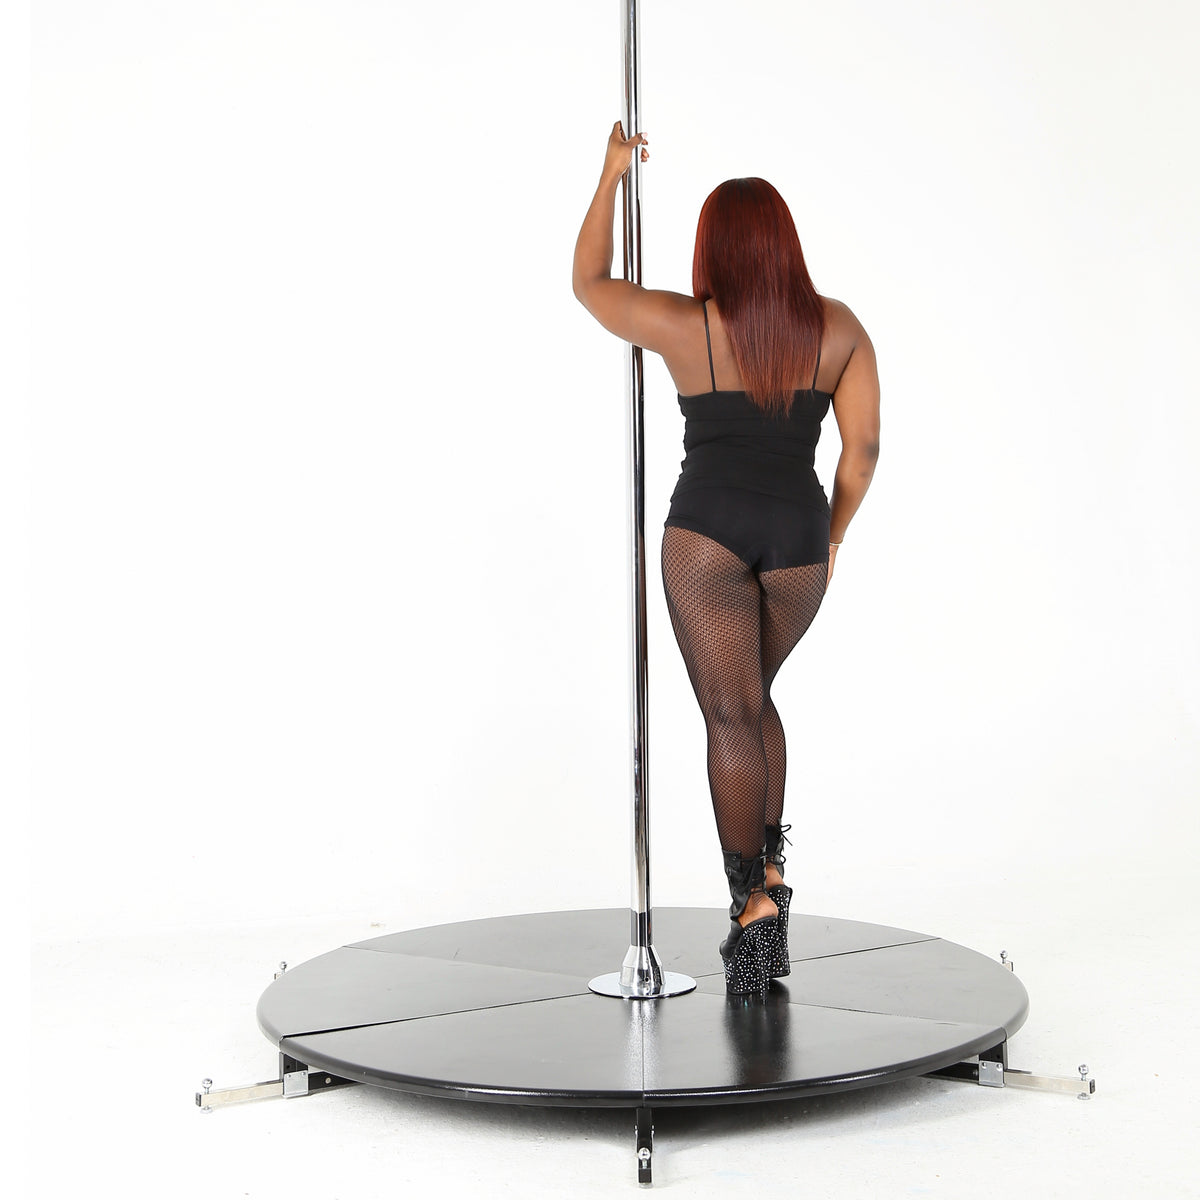 MIami's Pole Dance Rental Pickup & Delivery